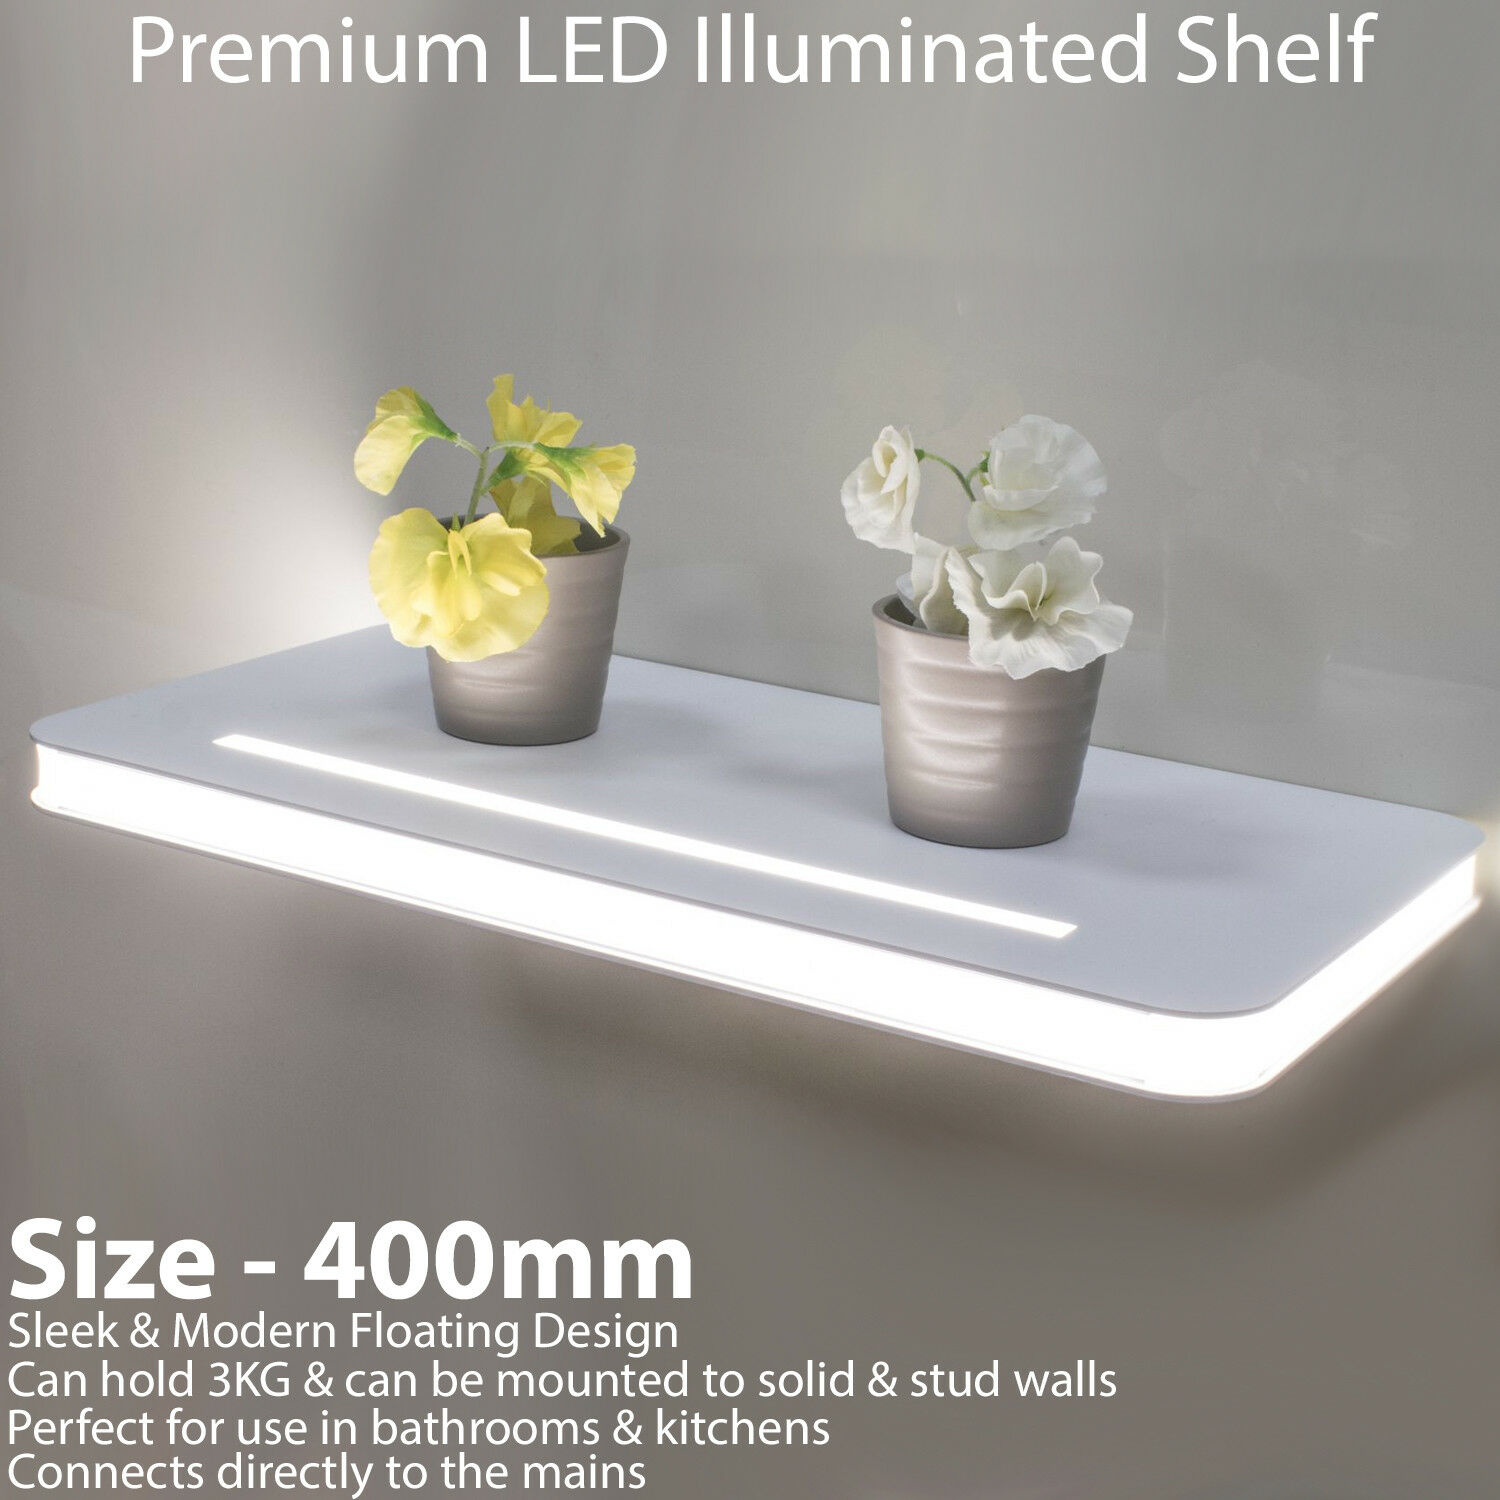 400 mm Illuminated DEL Floating Floating Floating Shelf – Bathroom Kitchen Modern Wall Lighting Unit | Outlet Store